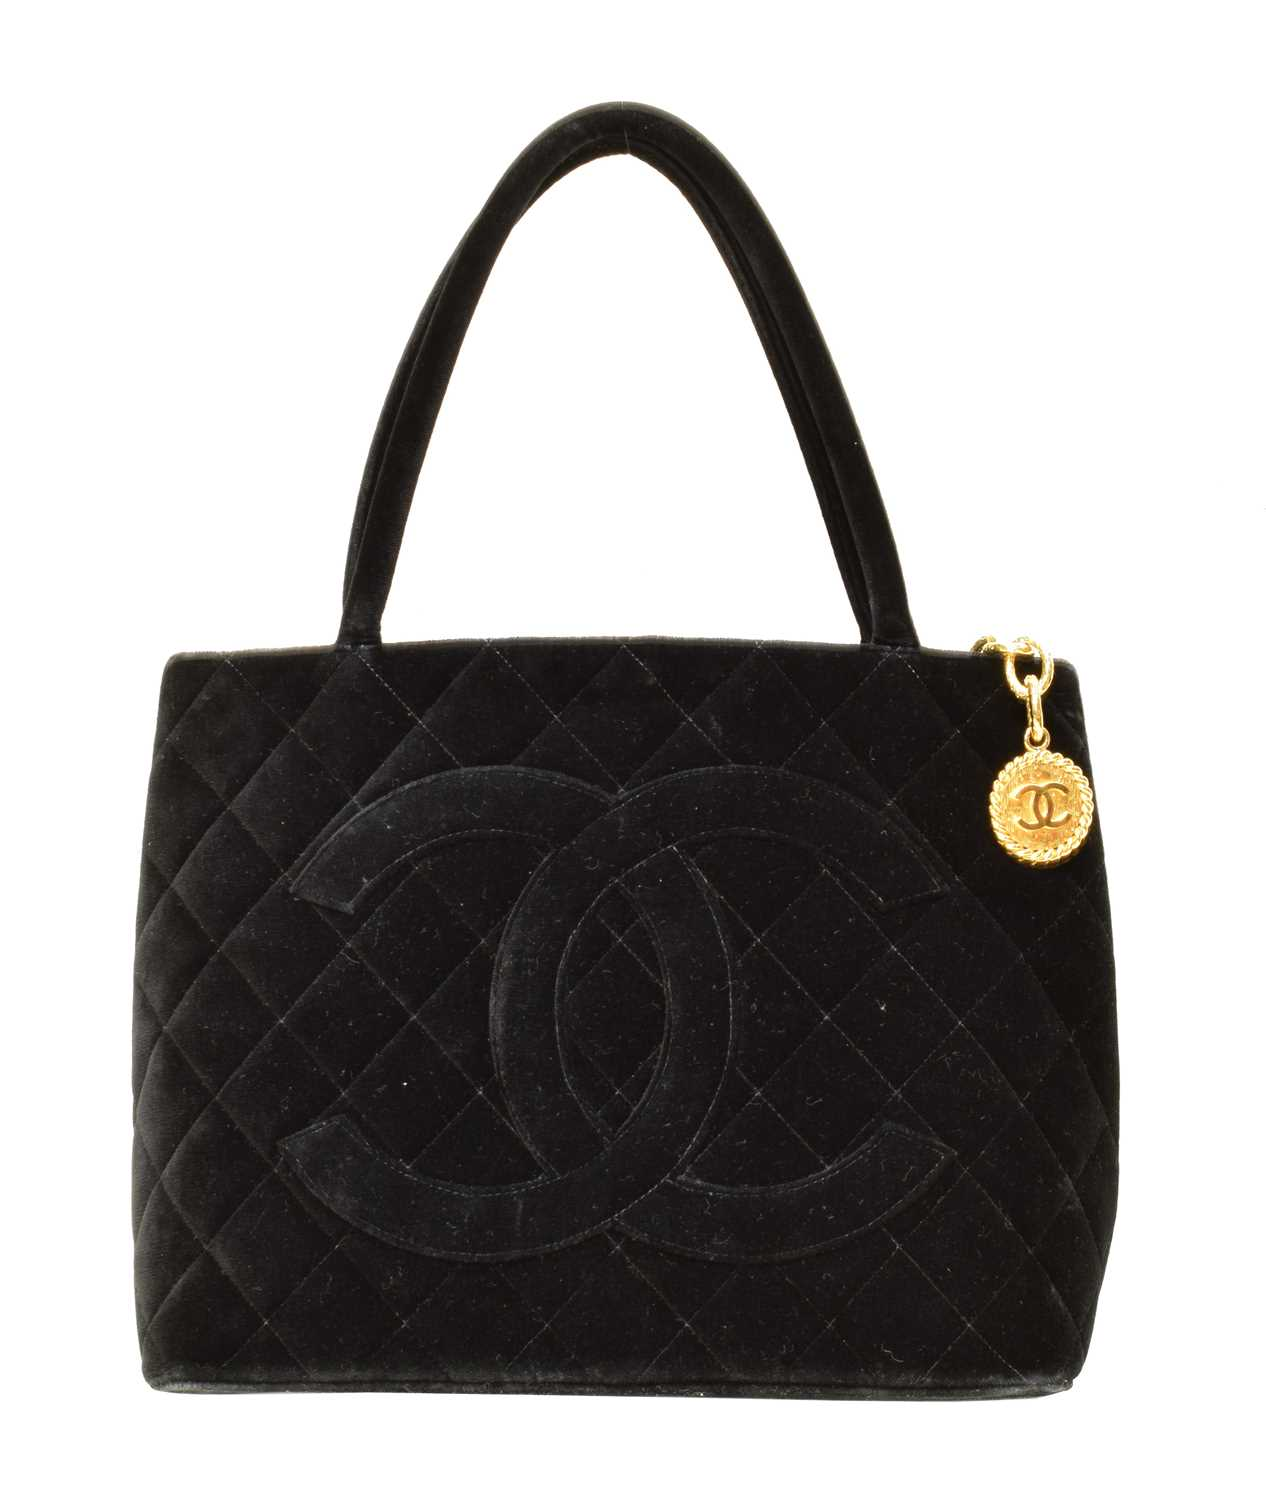 A Chanel Medallion Shoulder Bag, circa 1997-9, the black velvet quilted canvas exterior with black canvas strap and gold tone hardware, serial no. 5411744.